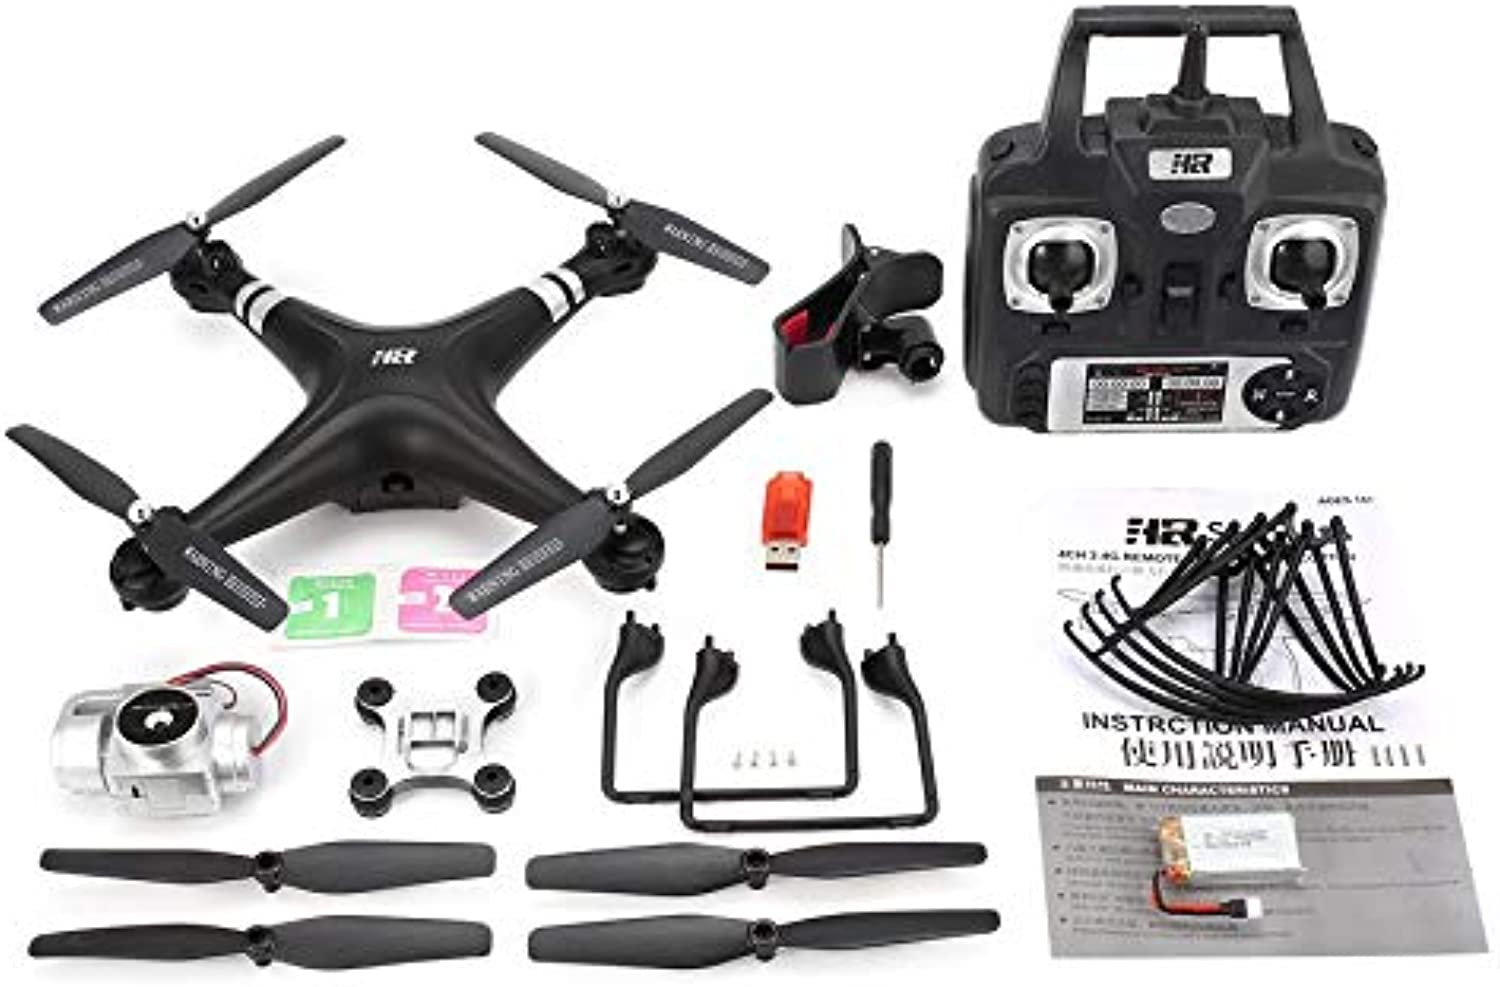 Yaoaoden SH5HD 2.4G FPV Drone RC Quadcopter with 720P Adjustable WiFi Camera Live Video Altitude Hold Headless Mode One Key Return